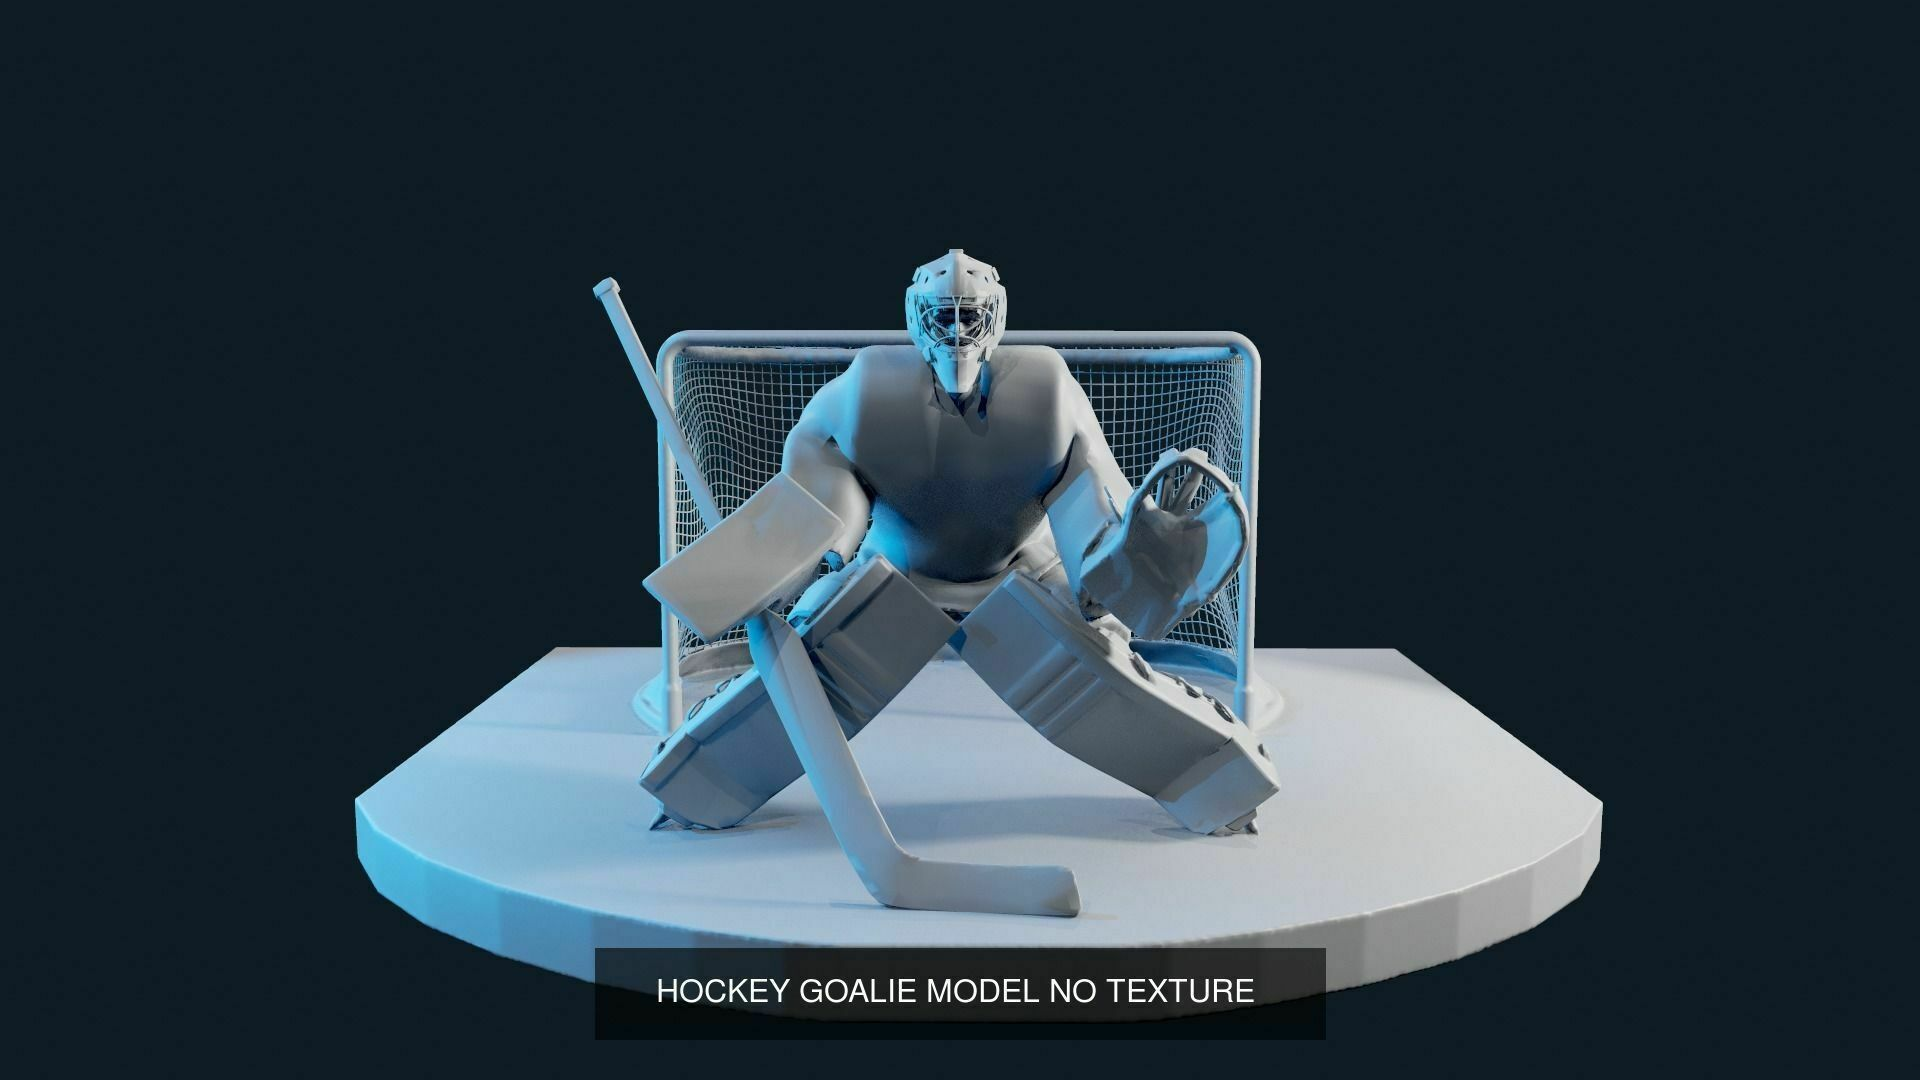 ultimate-hockey-poses-pack-model-no-texture-3d-model-max-obj-fbx-stl-tbscene (3).jpg Download OBJ file ULTIMATE HOCKEY POSES PACK MODEL NO TEXTURE 3D Model Collection • 3D printing template, NightCreativity